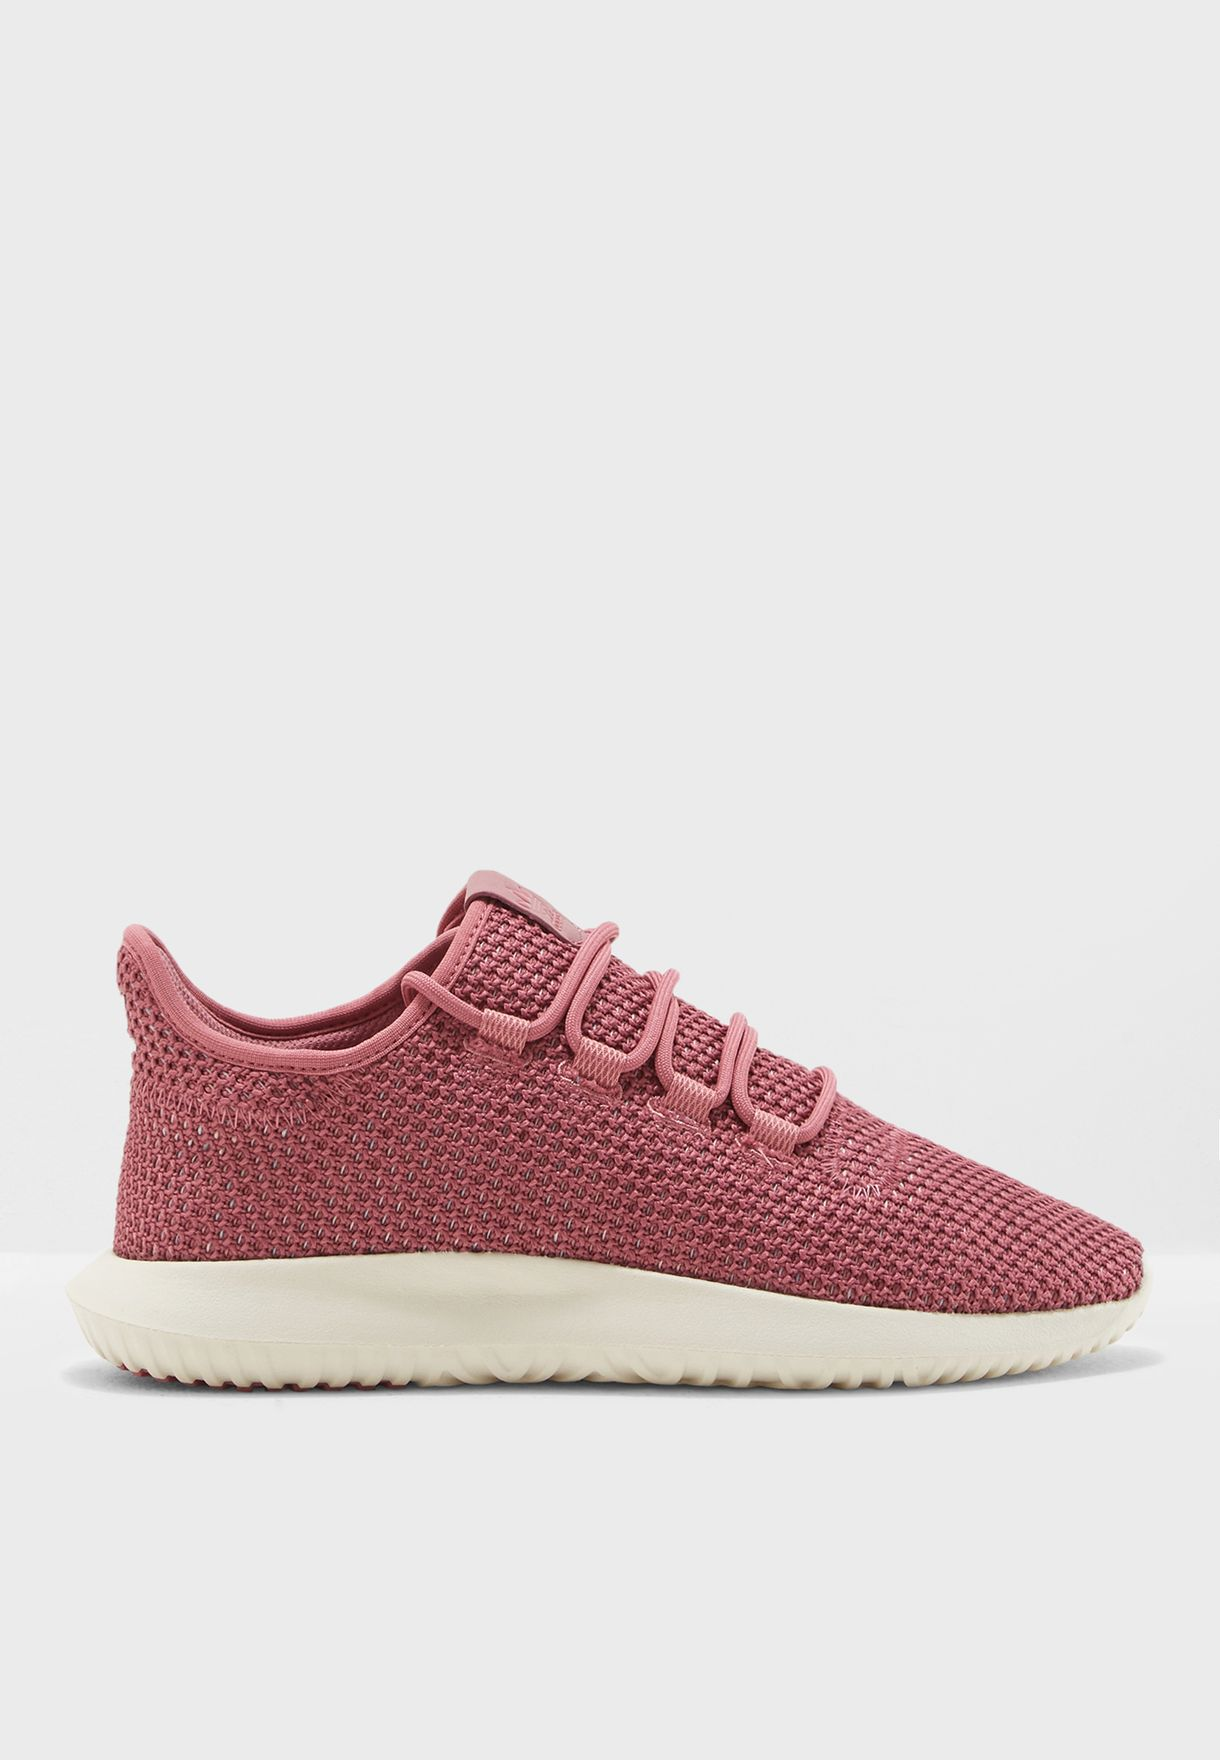 b29e44aa5d3 Shop adidas Originals pink Tubular Shadow CK B37759 for Women in UAE ...